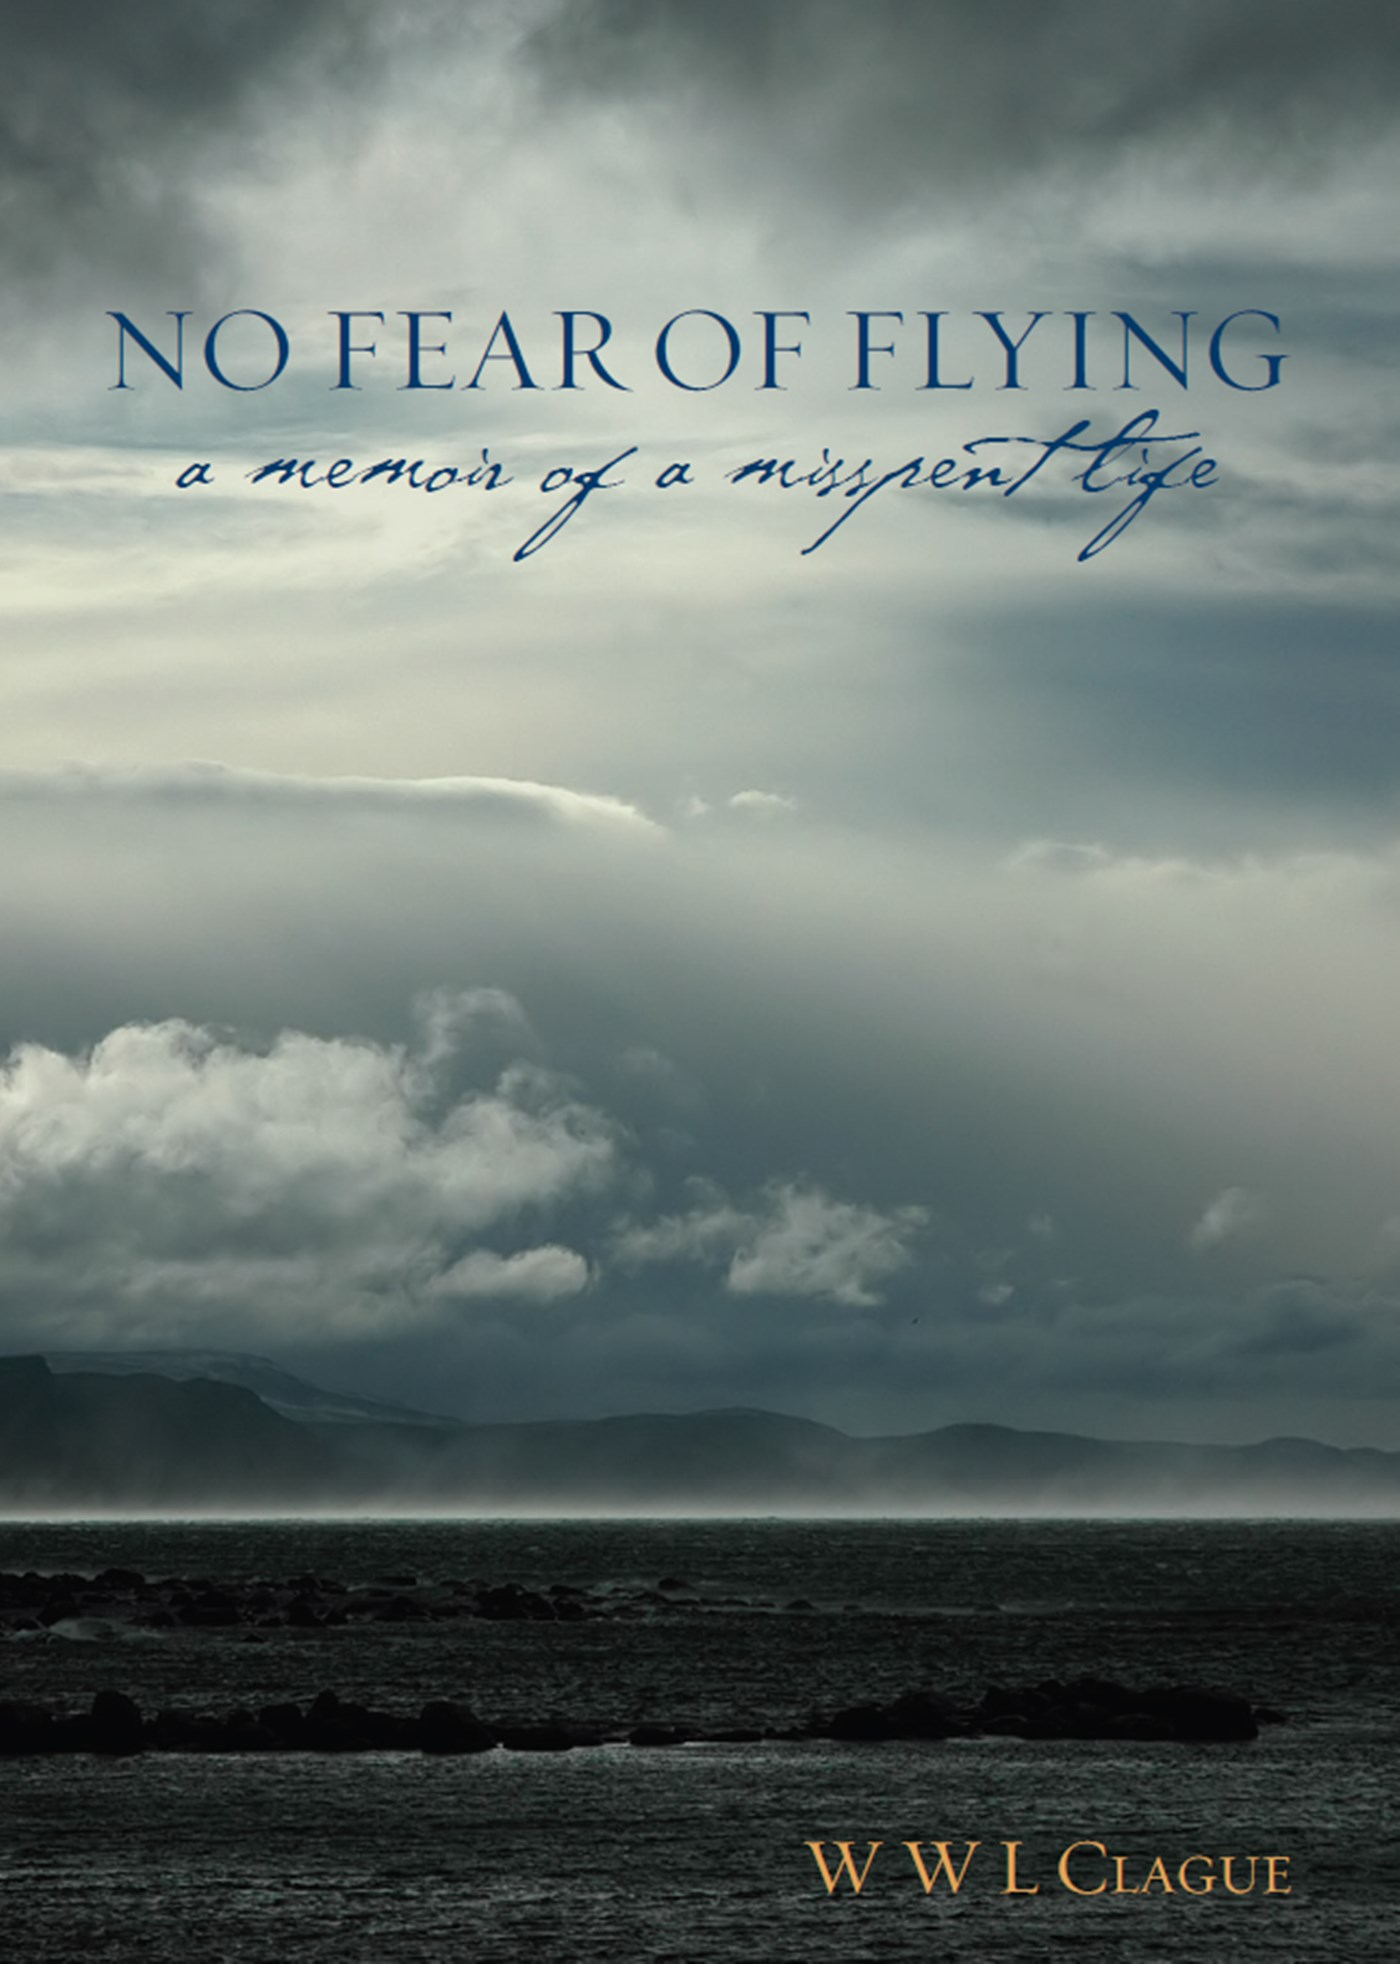 No Fear of Flying